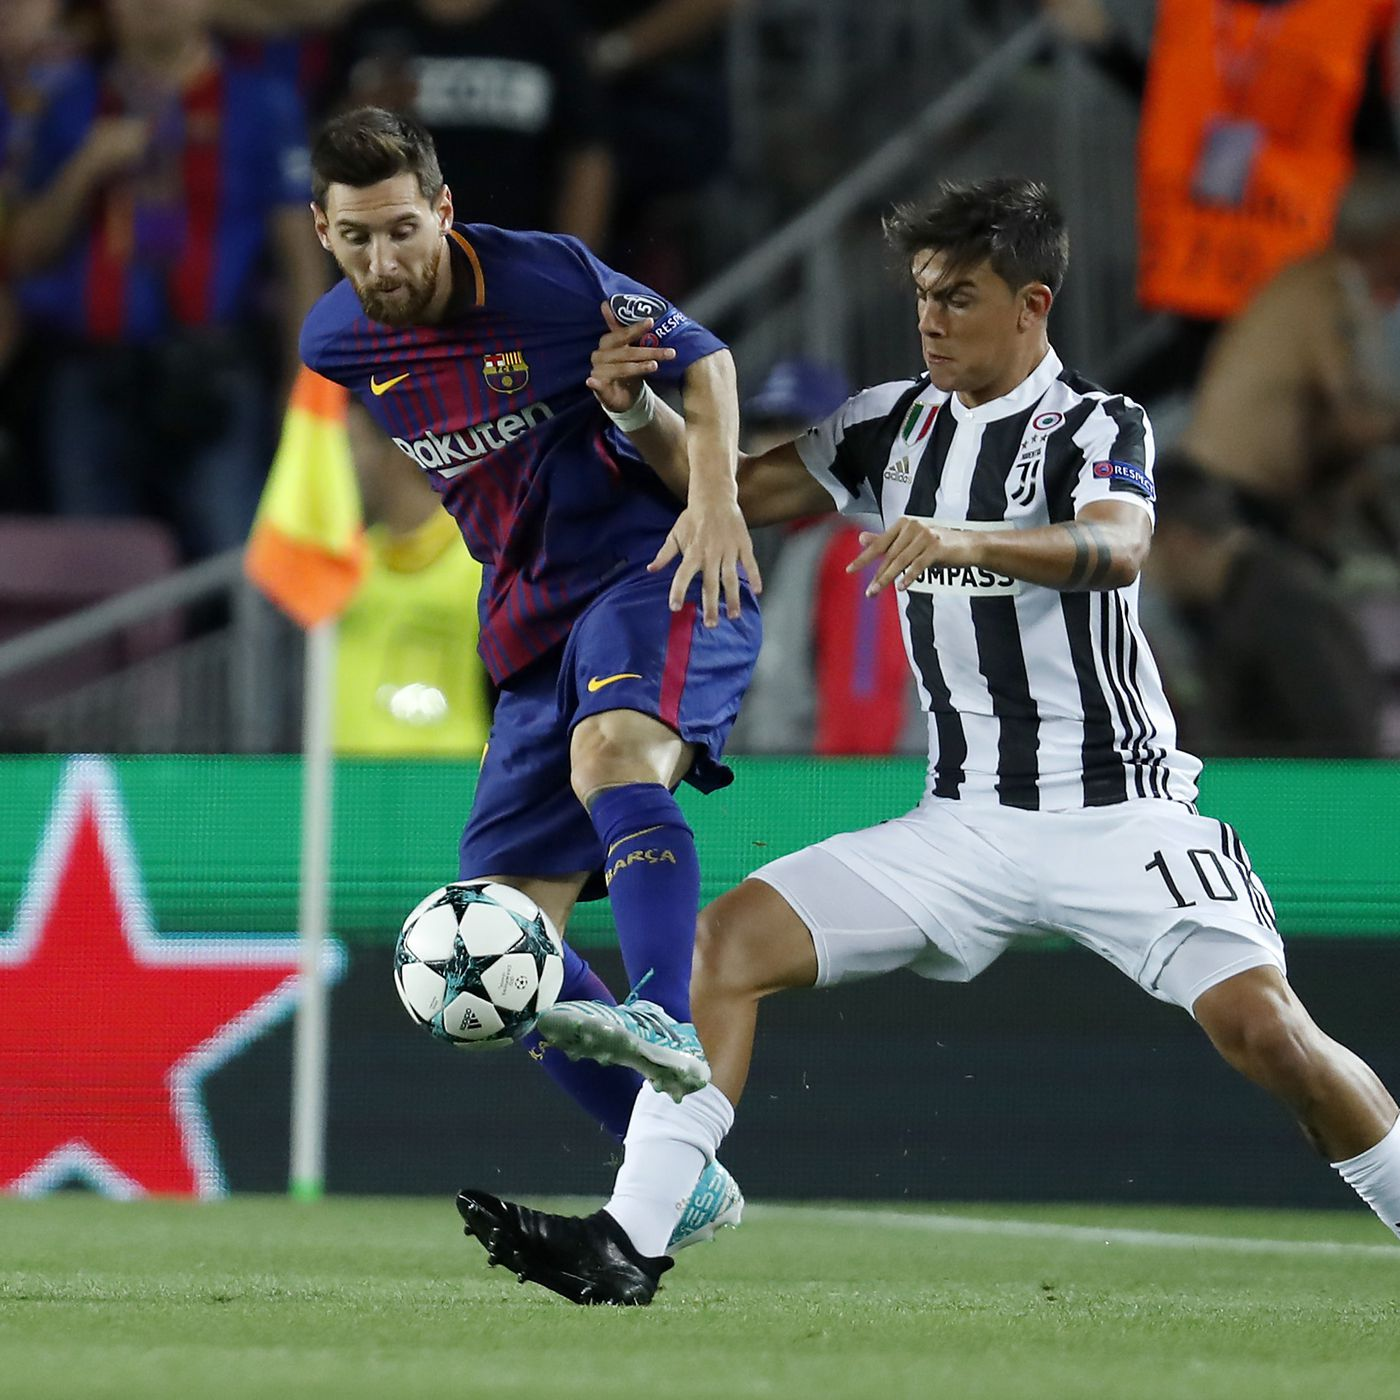 uefa champions league draw results barcelona to face juventus dynamo kiev and ferencvaros in group g barca blaugranes uefa champions league draw results